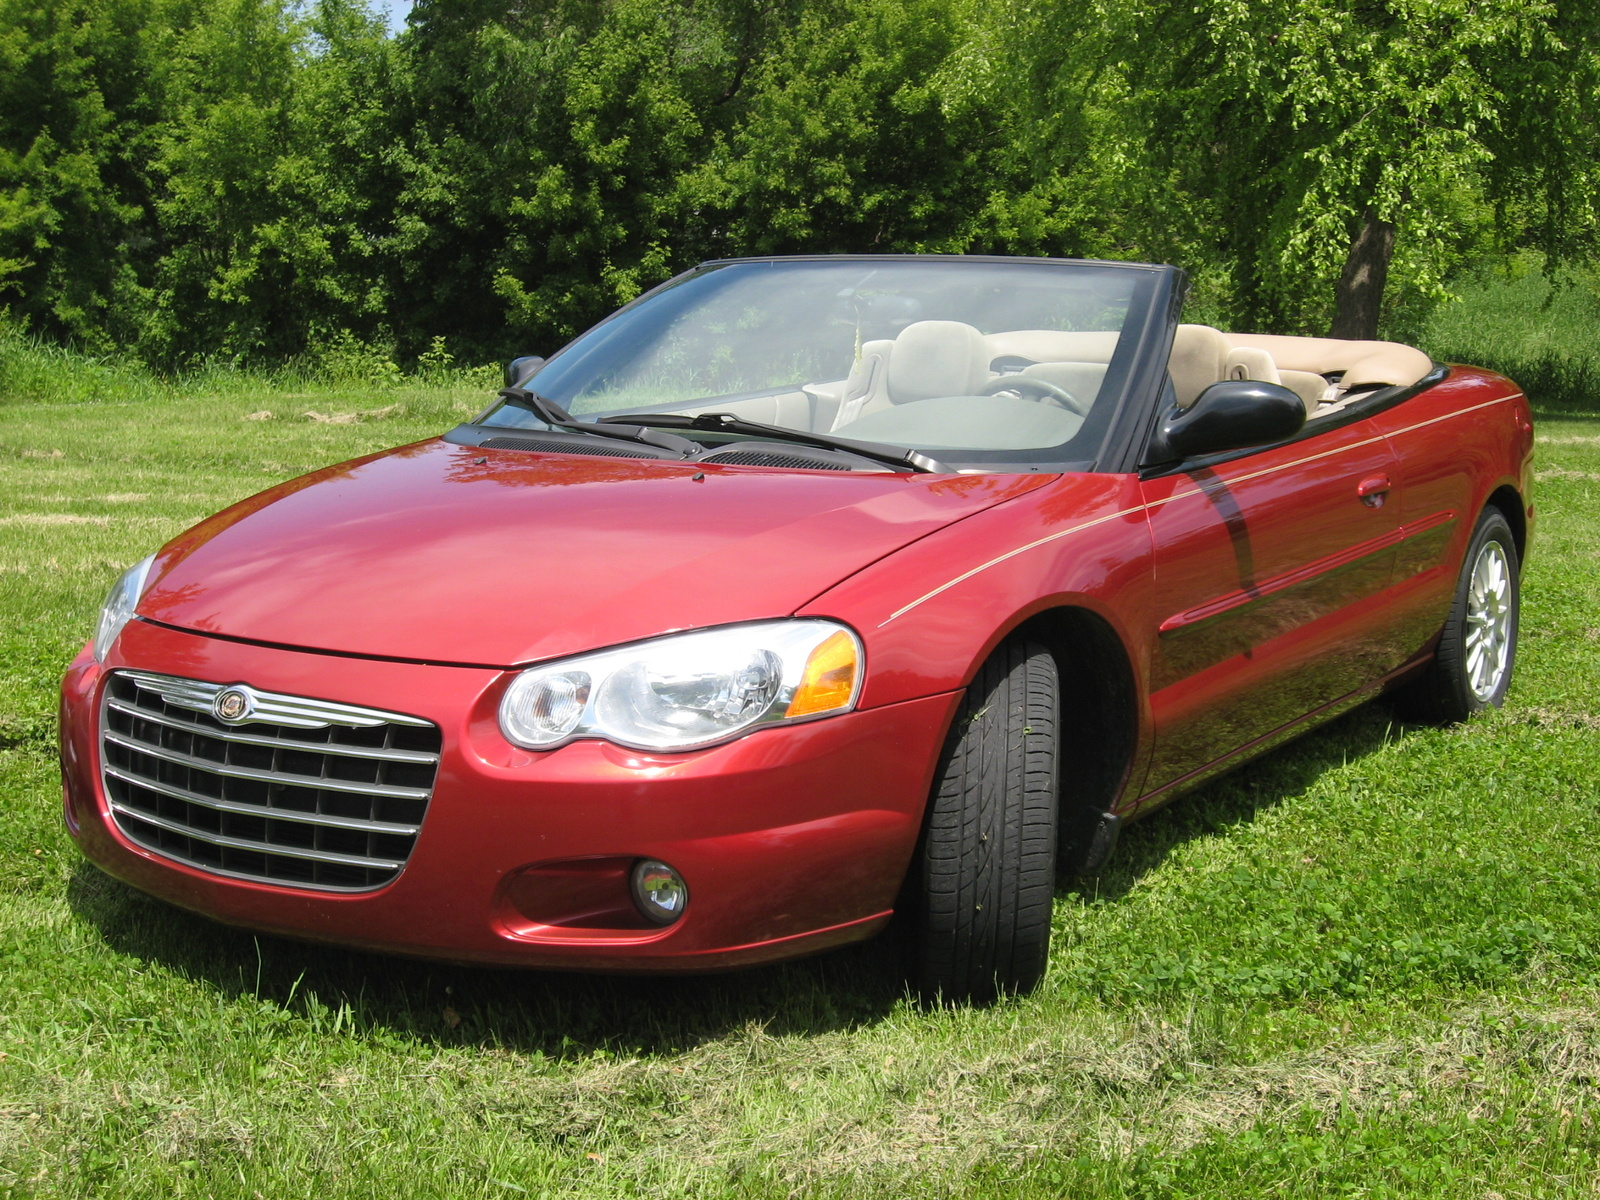 2004 Chrysler Sebring Touring Convertible picture, exterior